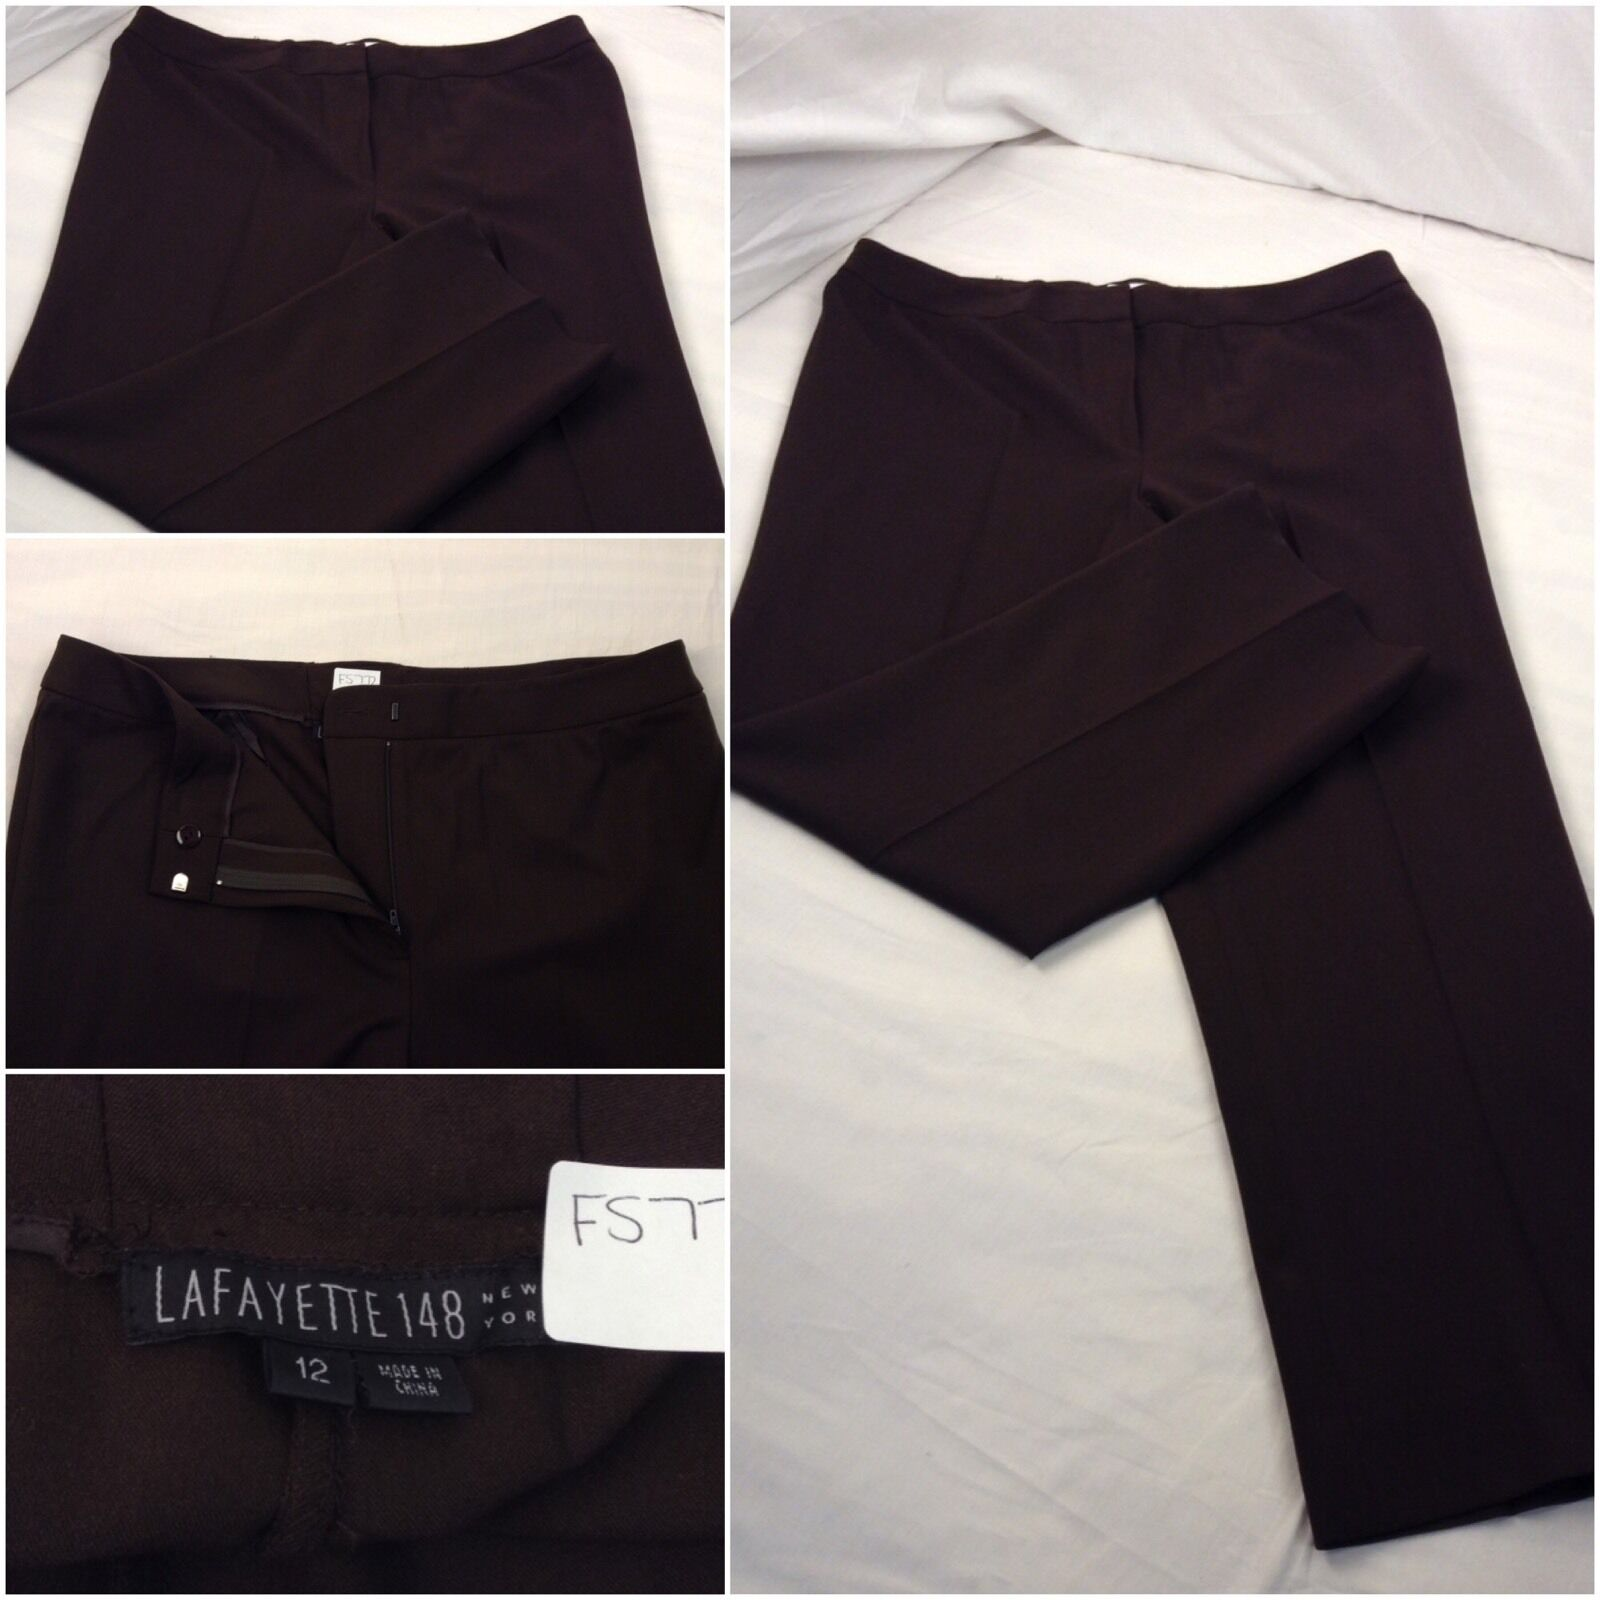 Lafayette 148 Pants Sz 12 Brown Wool Lycra Cropped Worn Once YGI  F5772